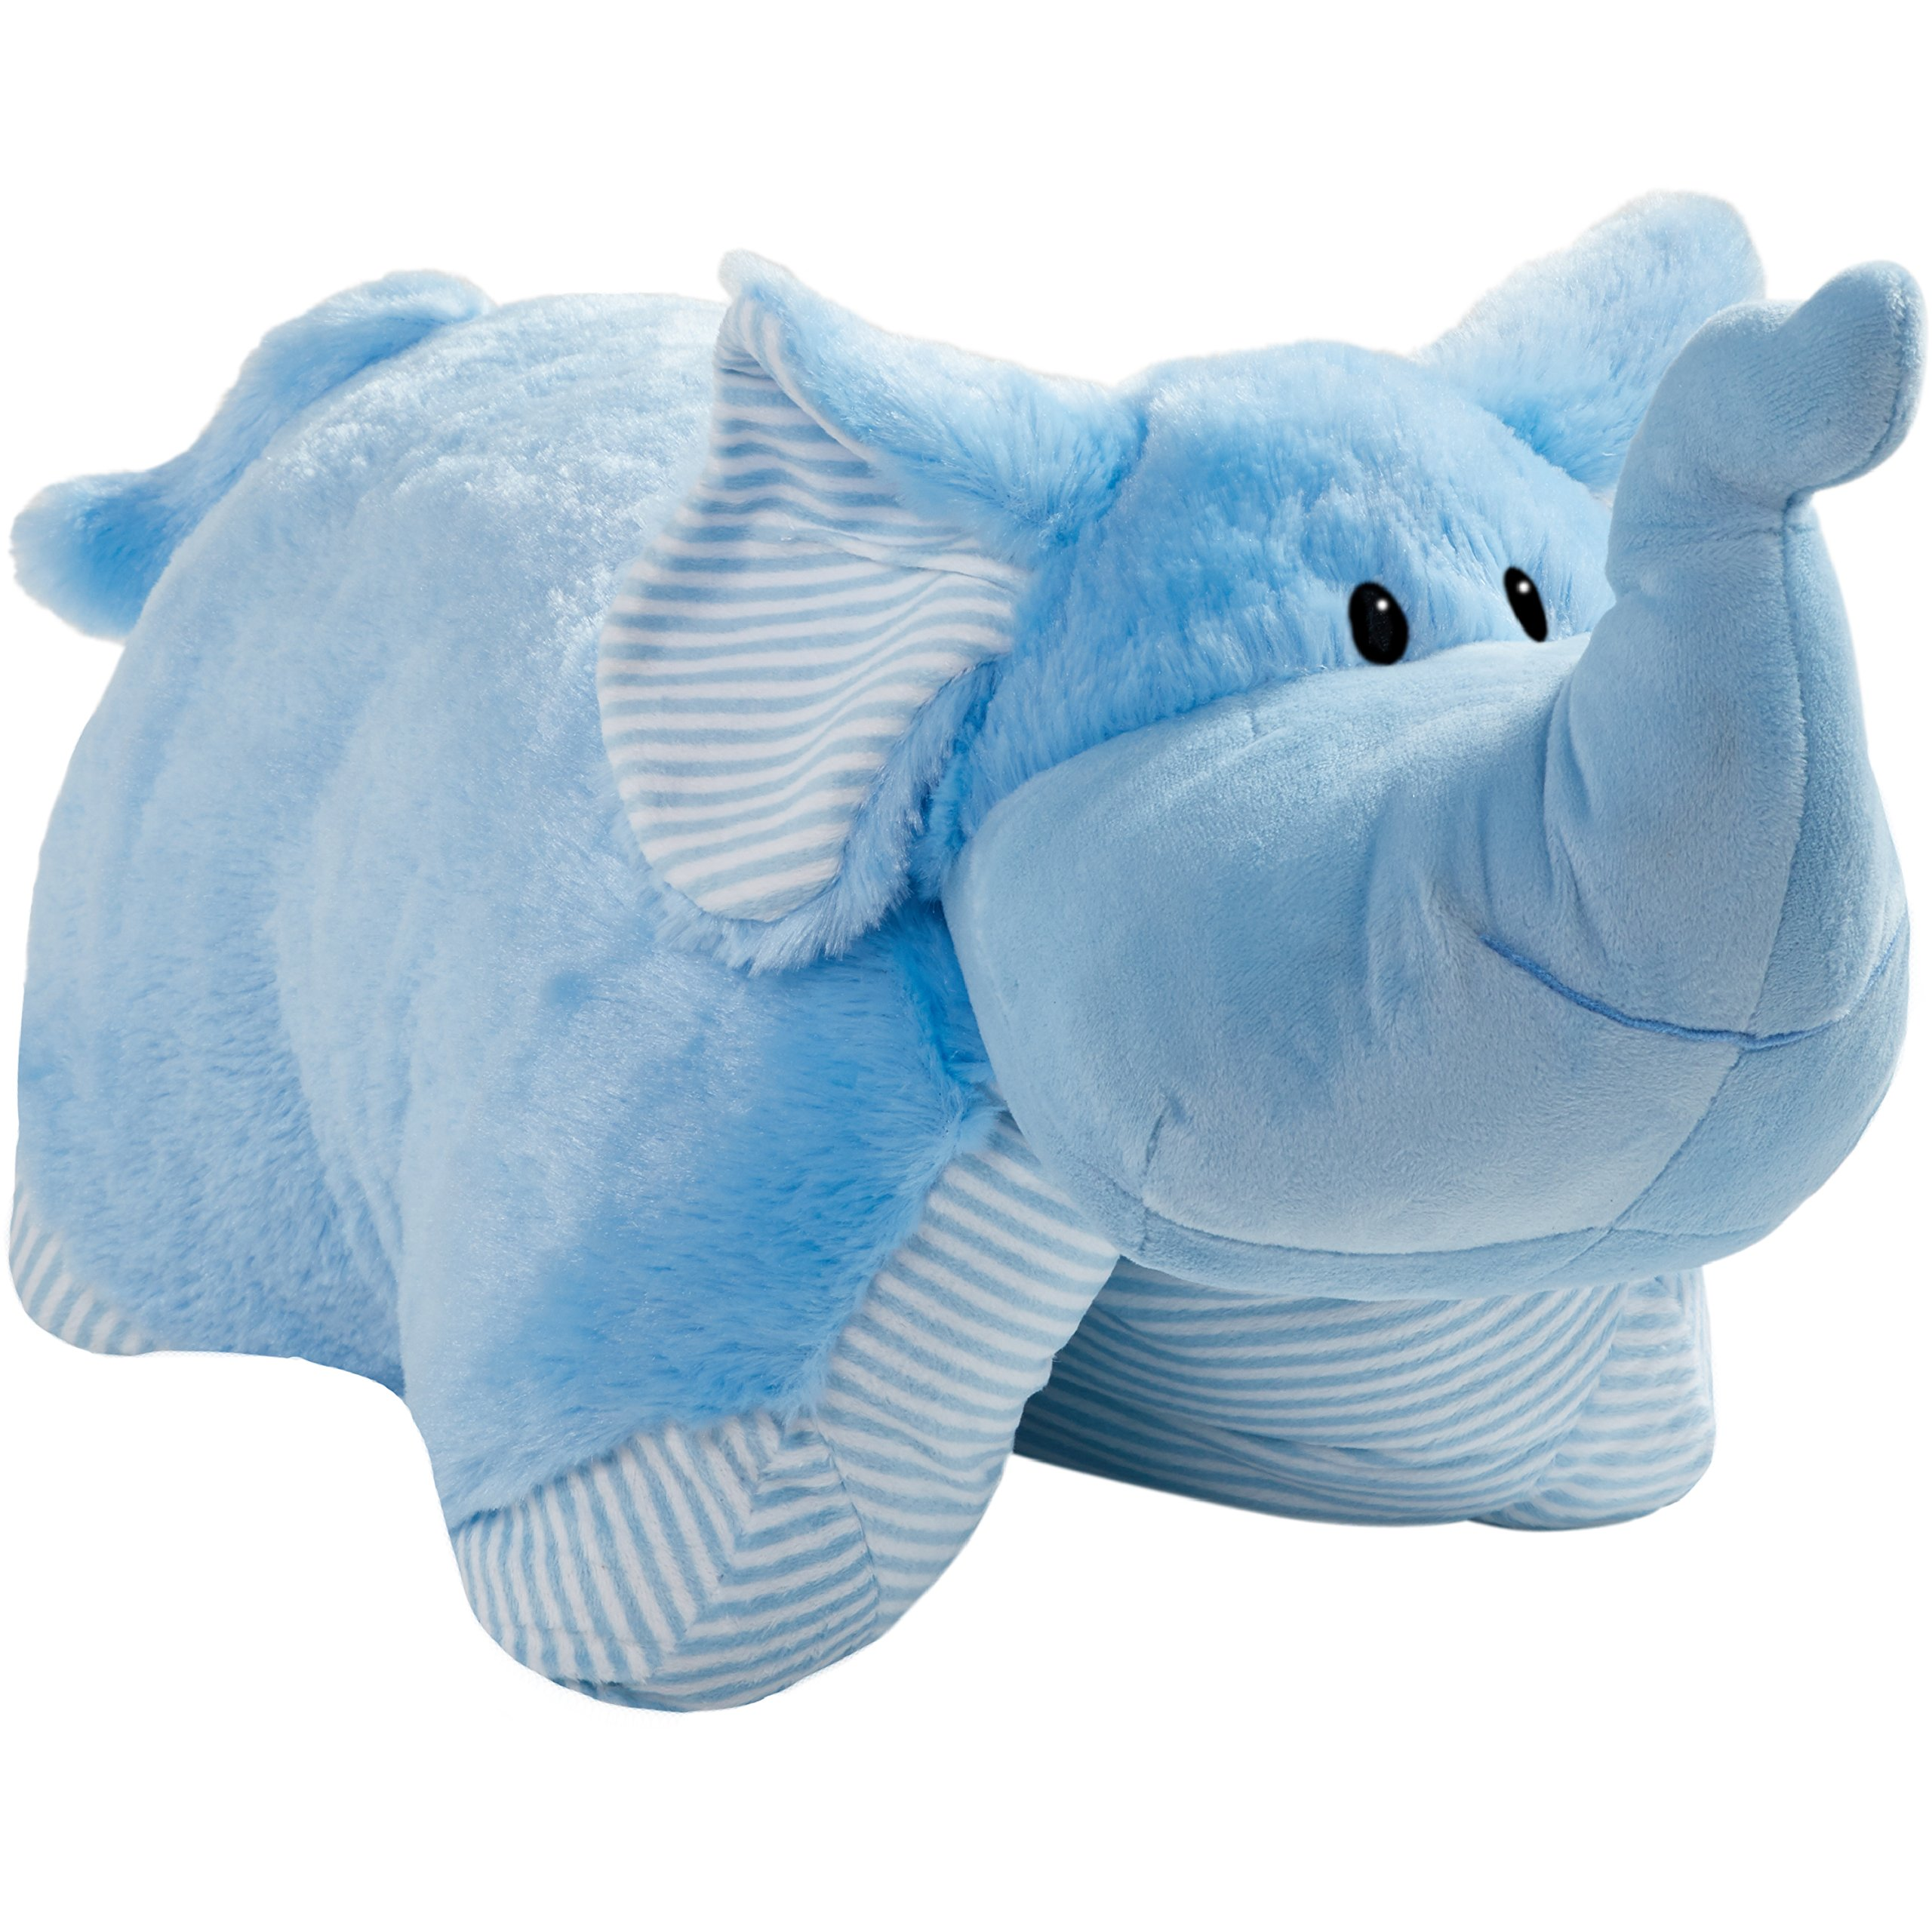 Pillow Pets My First, Blue Elephant, 18'' Stuffed Animal Plush Toy by Pillow Pets